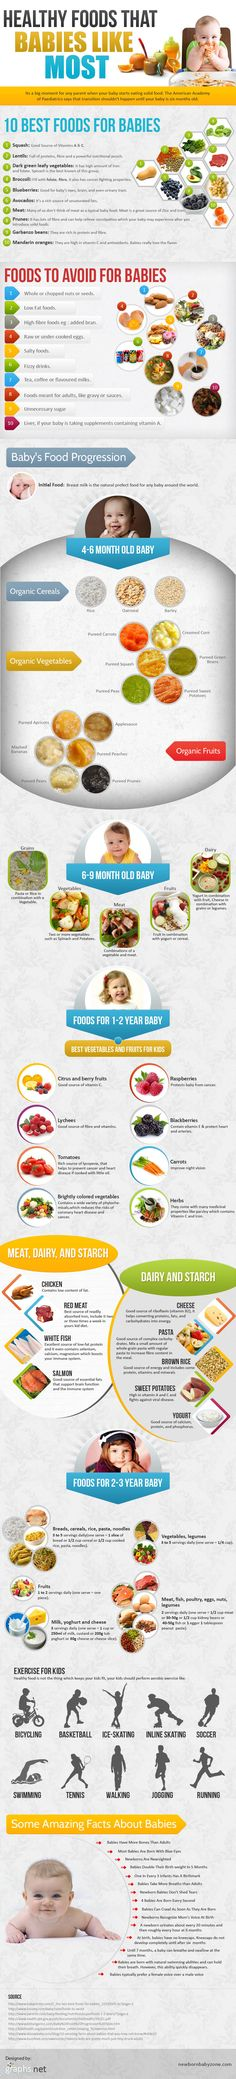 Healthy Foods That Babies Like Most Infographic | Parenting Patch